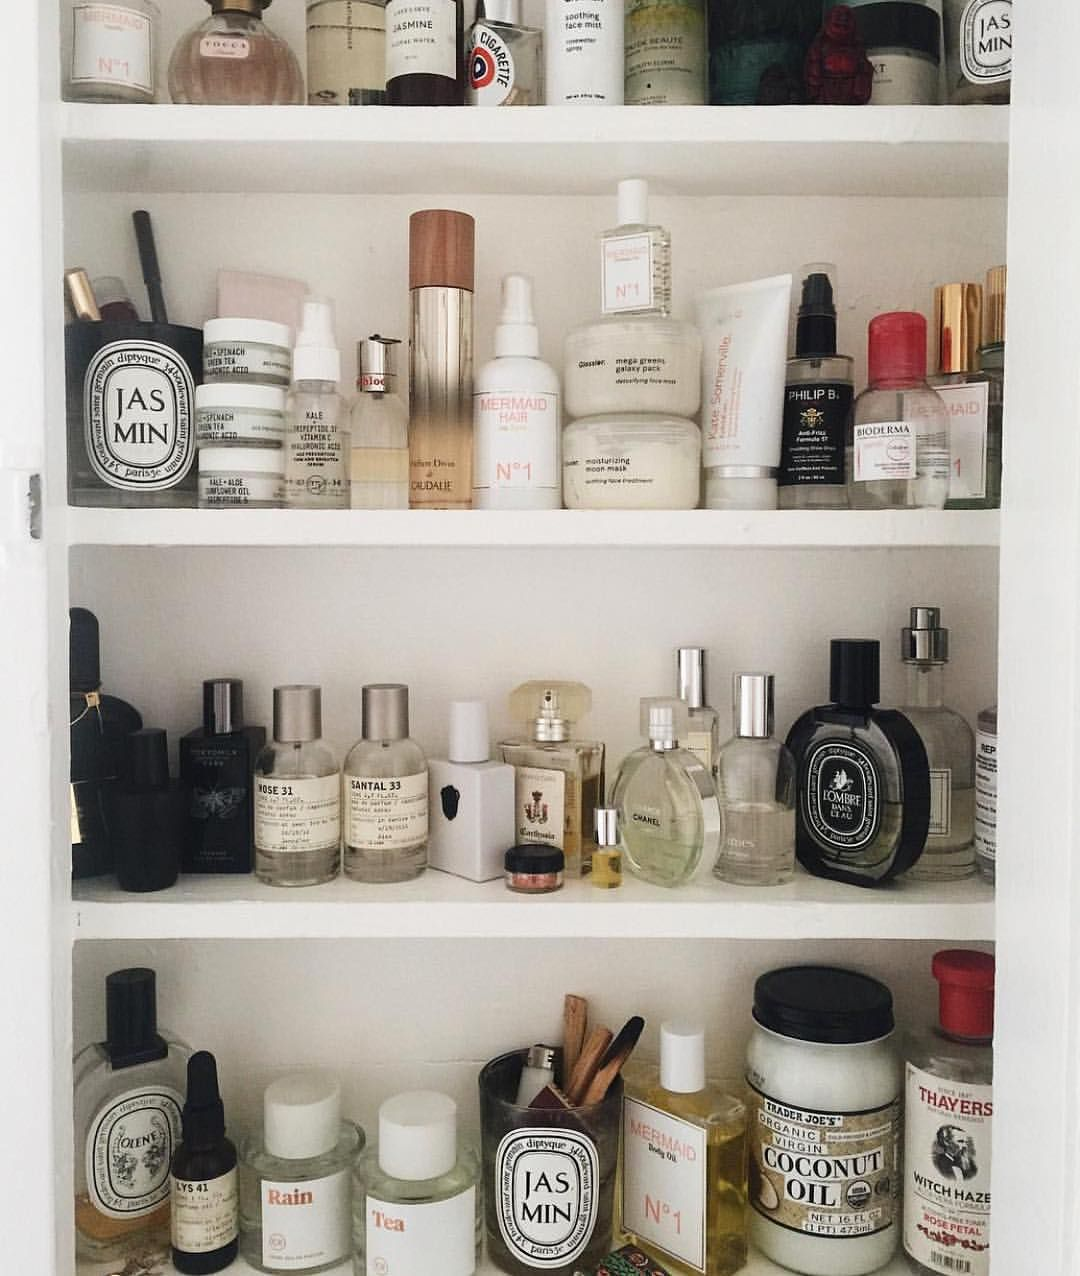 """781 Likes, 7 Comments - Youth To The People (@youthtothepeople) on Instagram: """"Our Serum, Eye Cream, and Mini Moisturizers have moved in. Feeling great about it. #happytobehome…"""""""